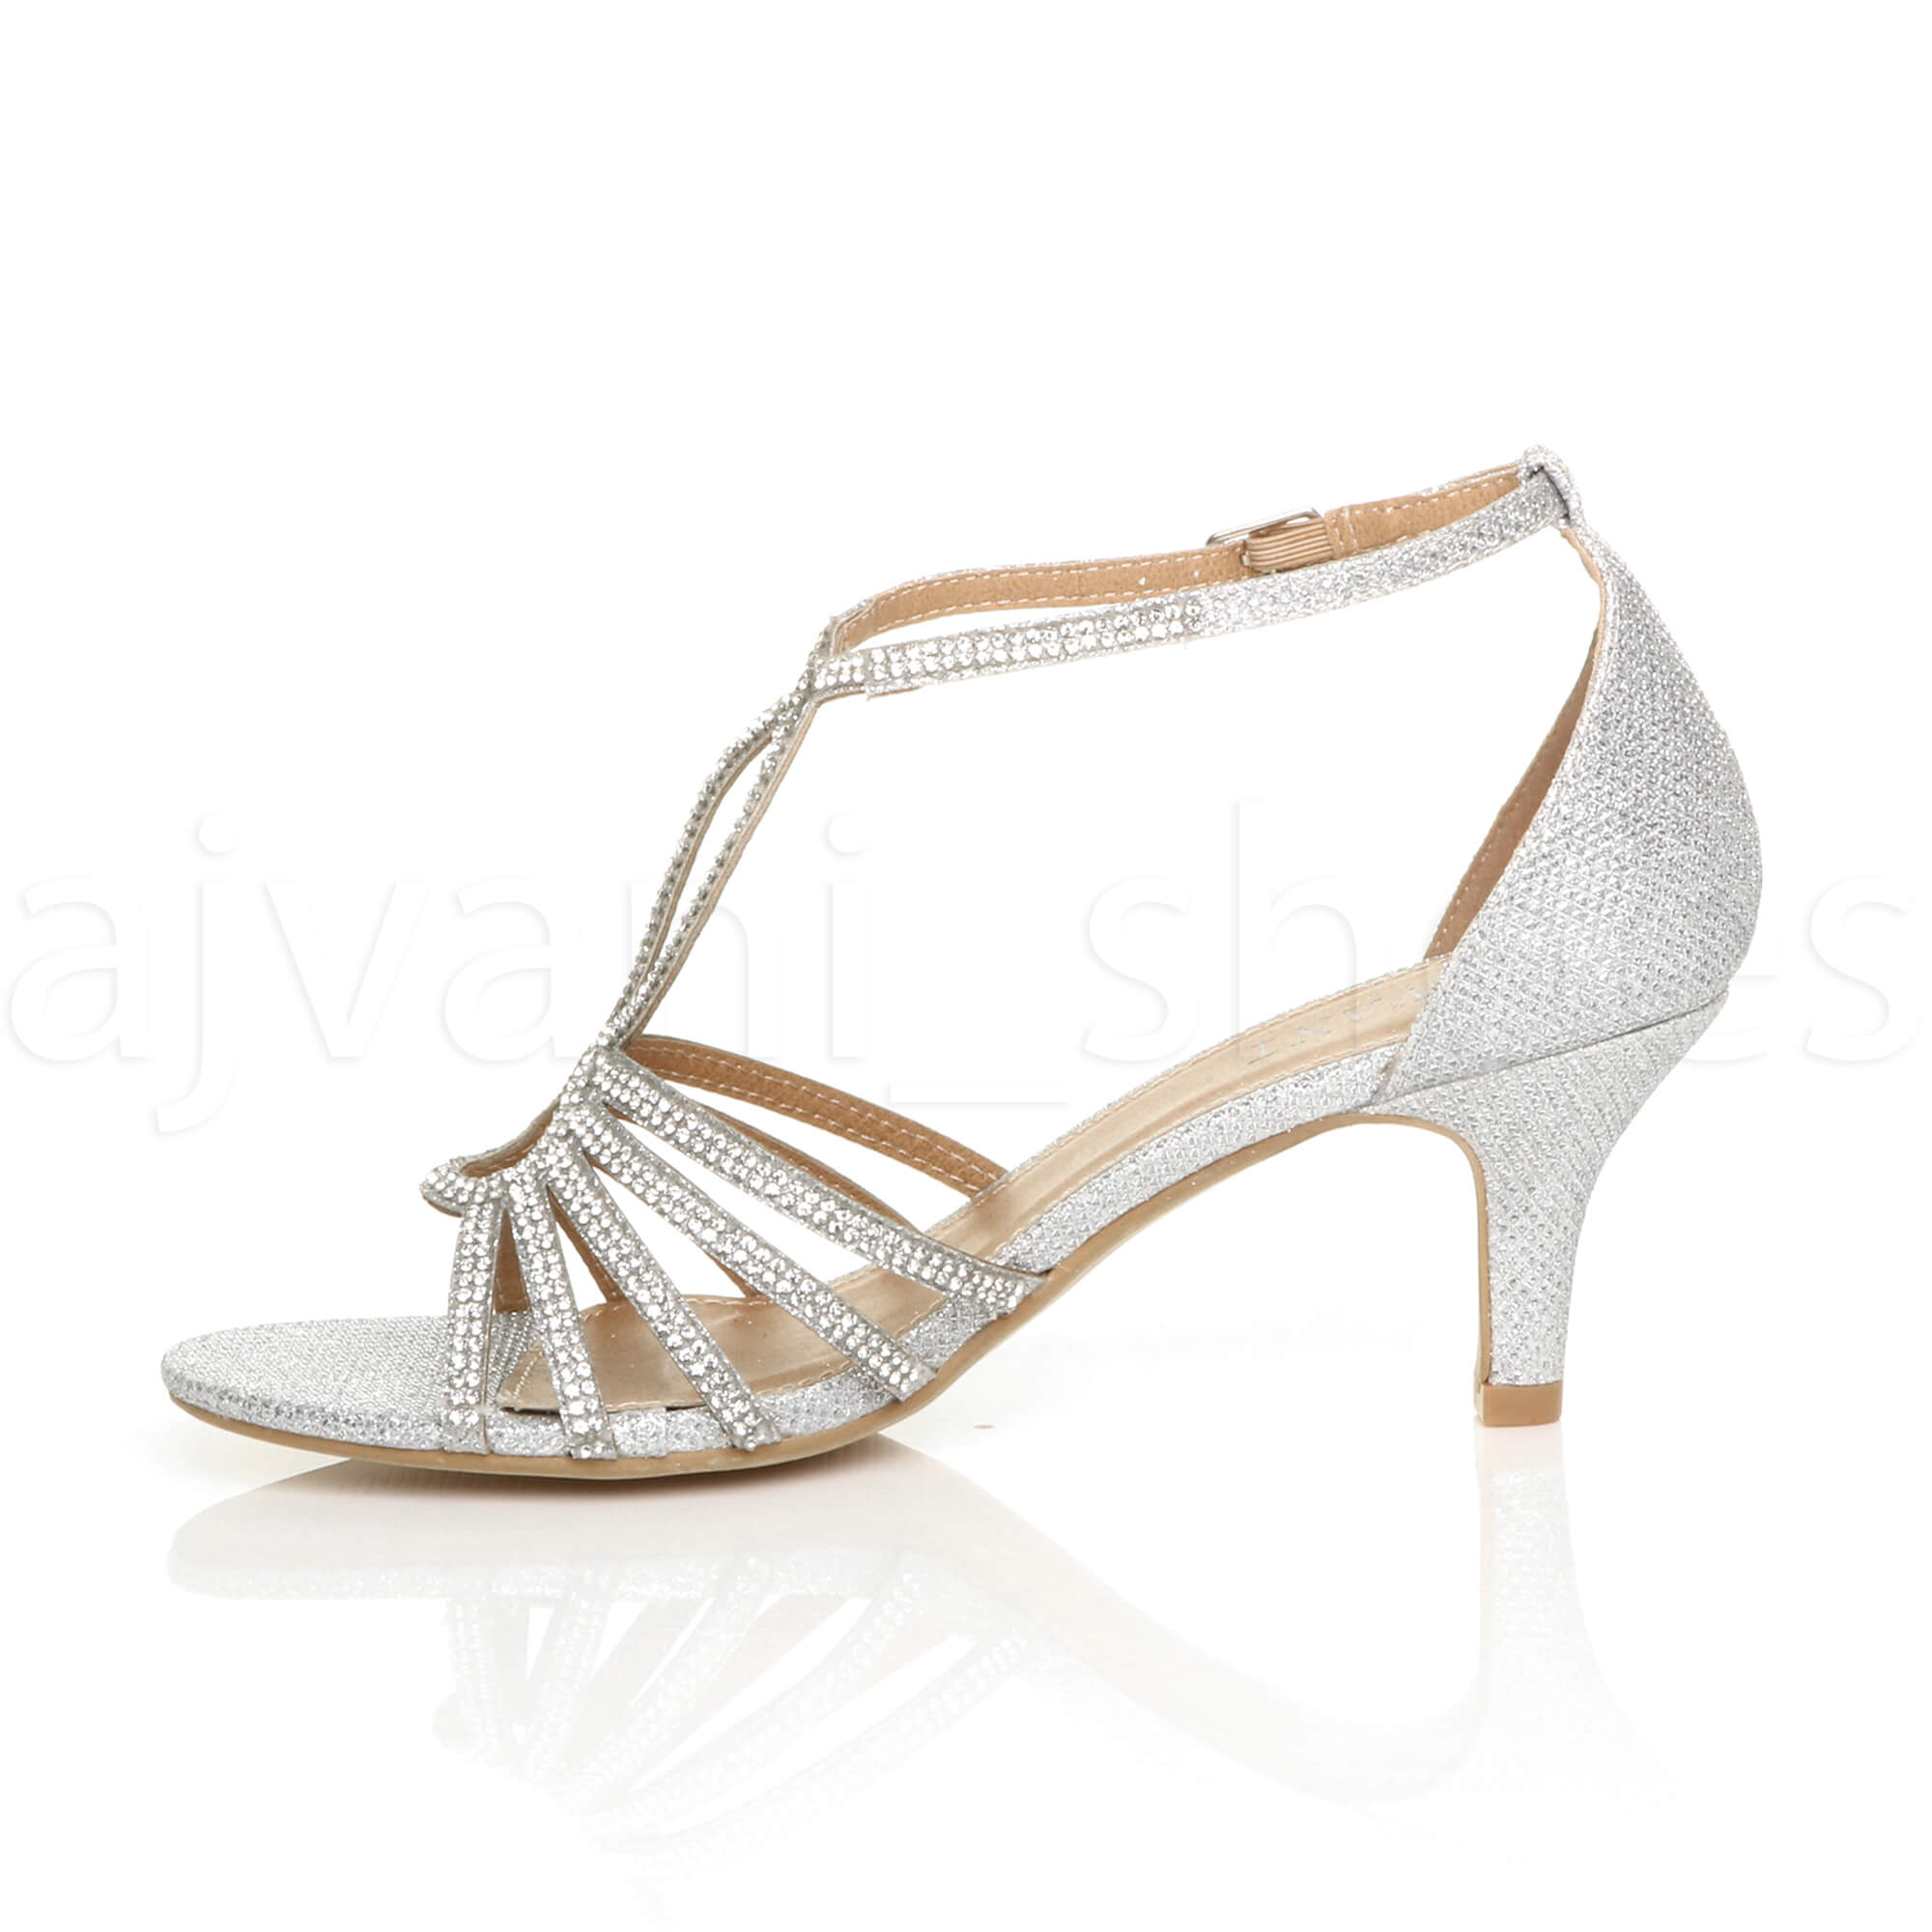 WOMENS-LADIES-MID-HEEL-STRAPPY-DIAMANTE-WEDDING-EVENING-T-BAR-SANDALS-SHOES-SIZE thumbnail 22